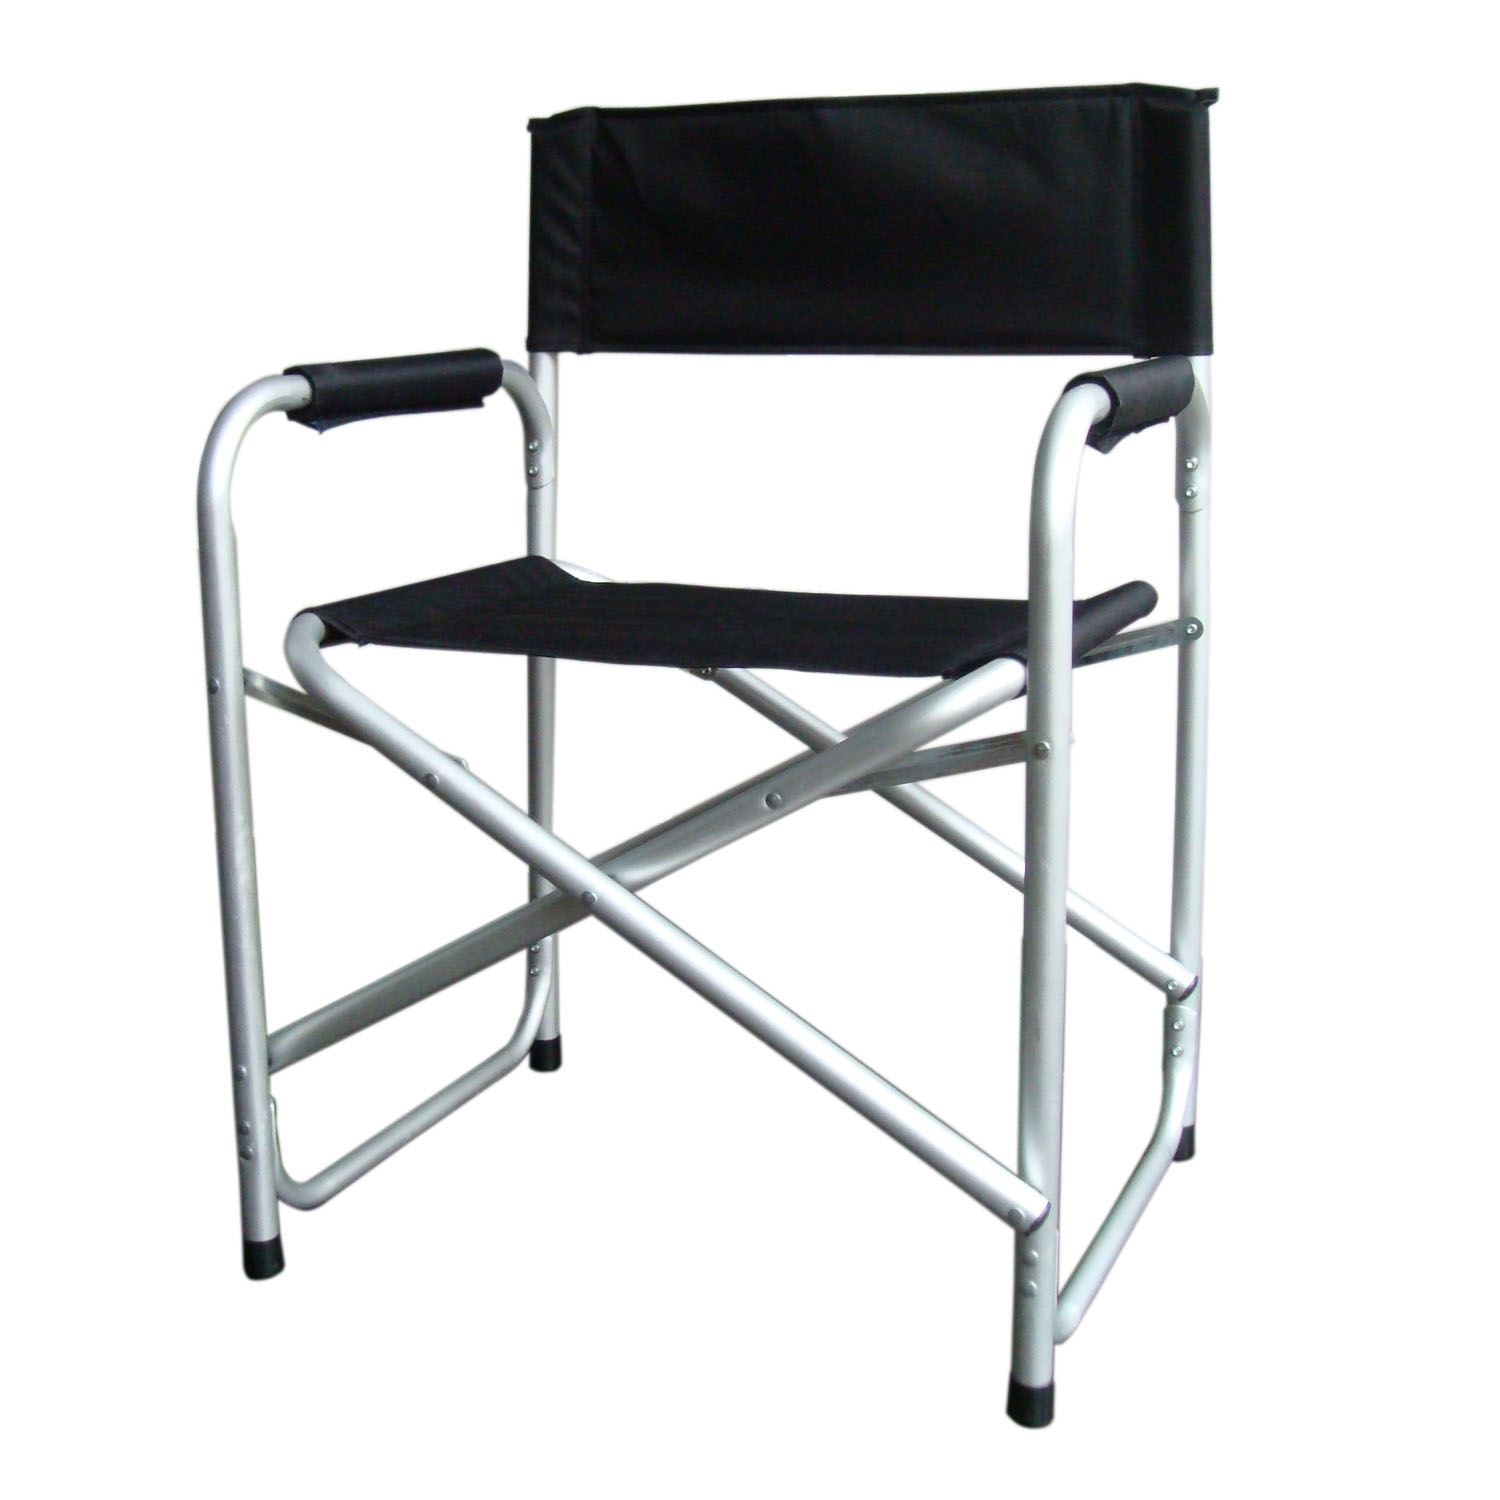 directors chair outdoor furniture rx racer black lightweight folding w table arms